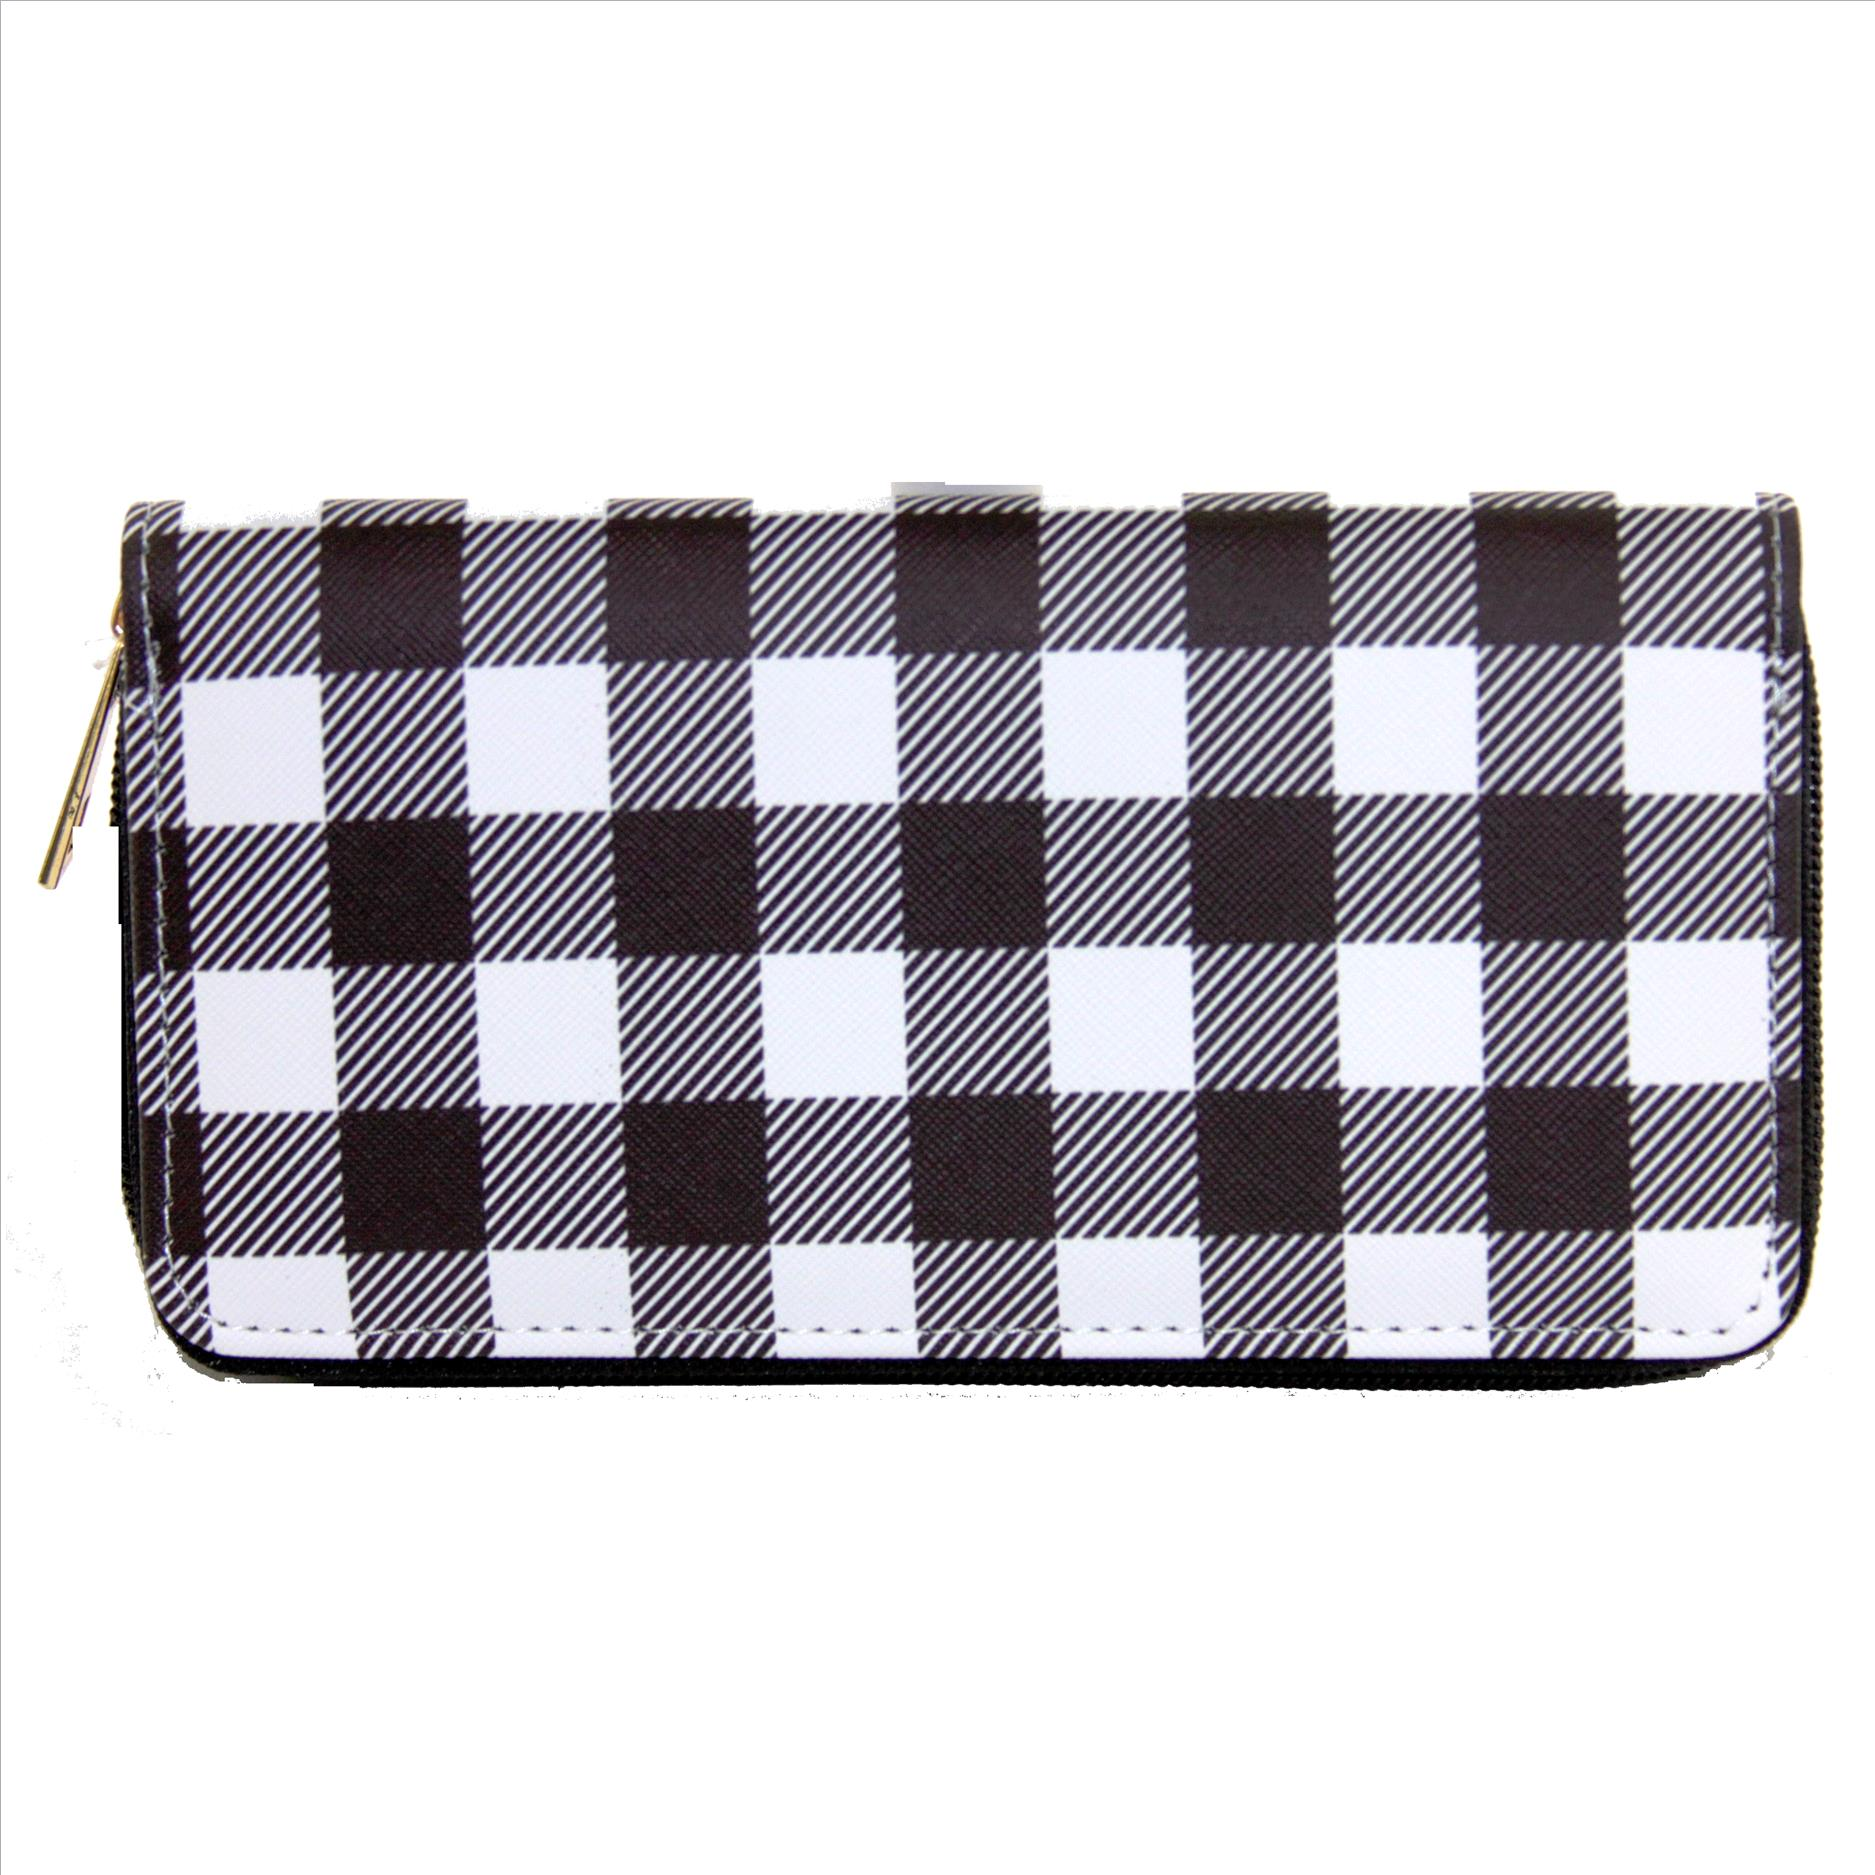 Buffalo Plaid Wallet - Black and White - 6 Pack